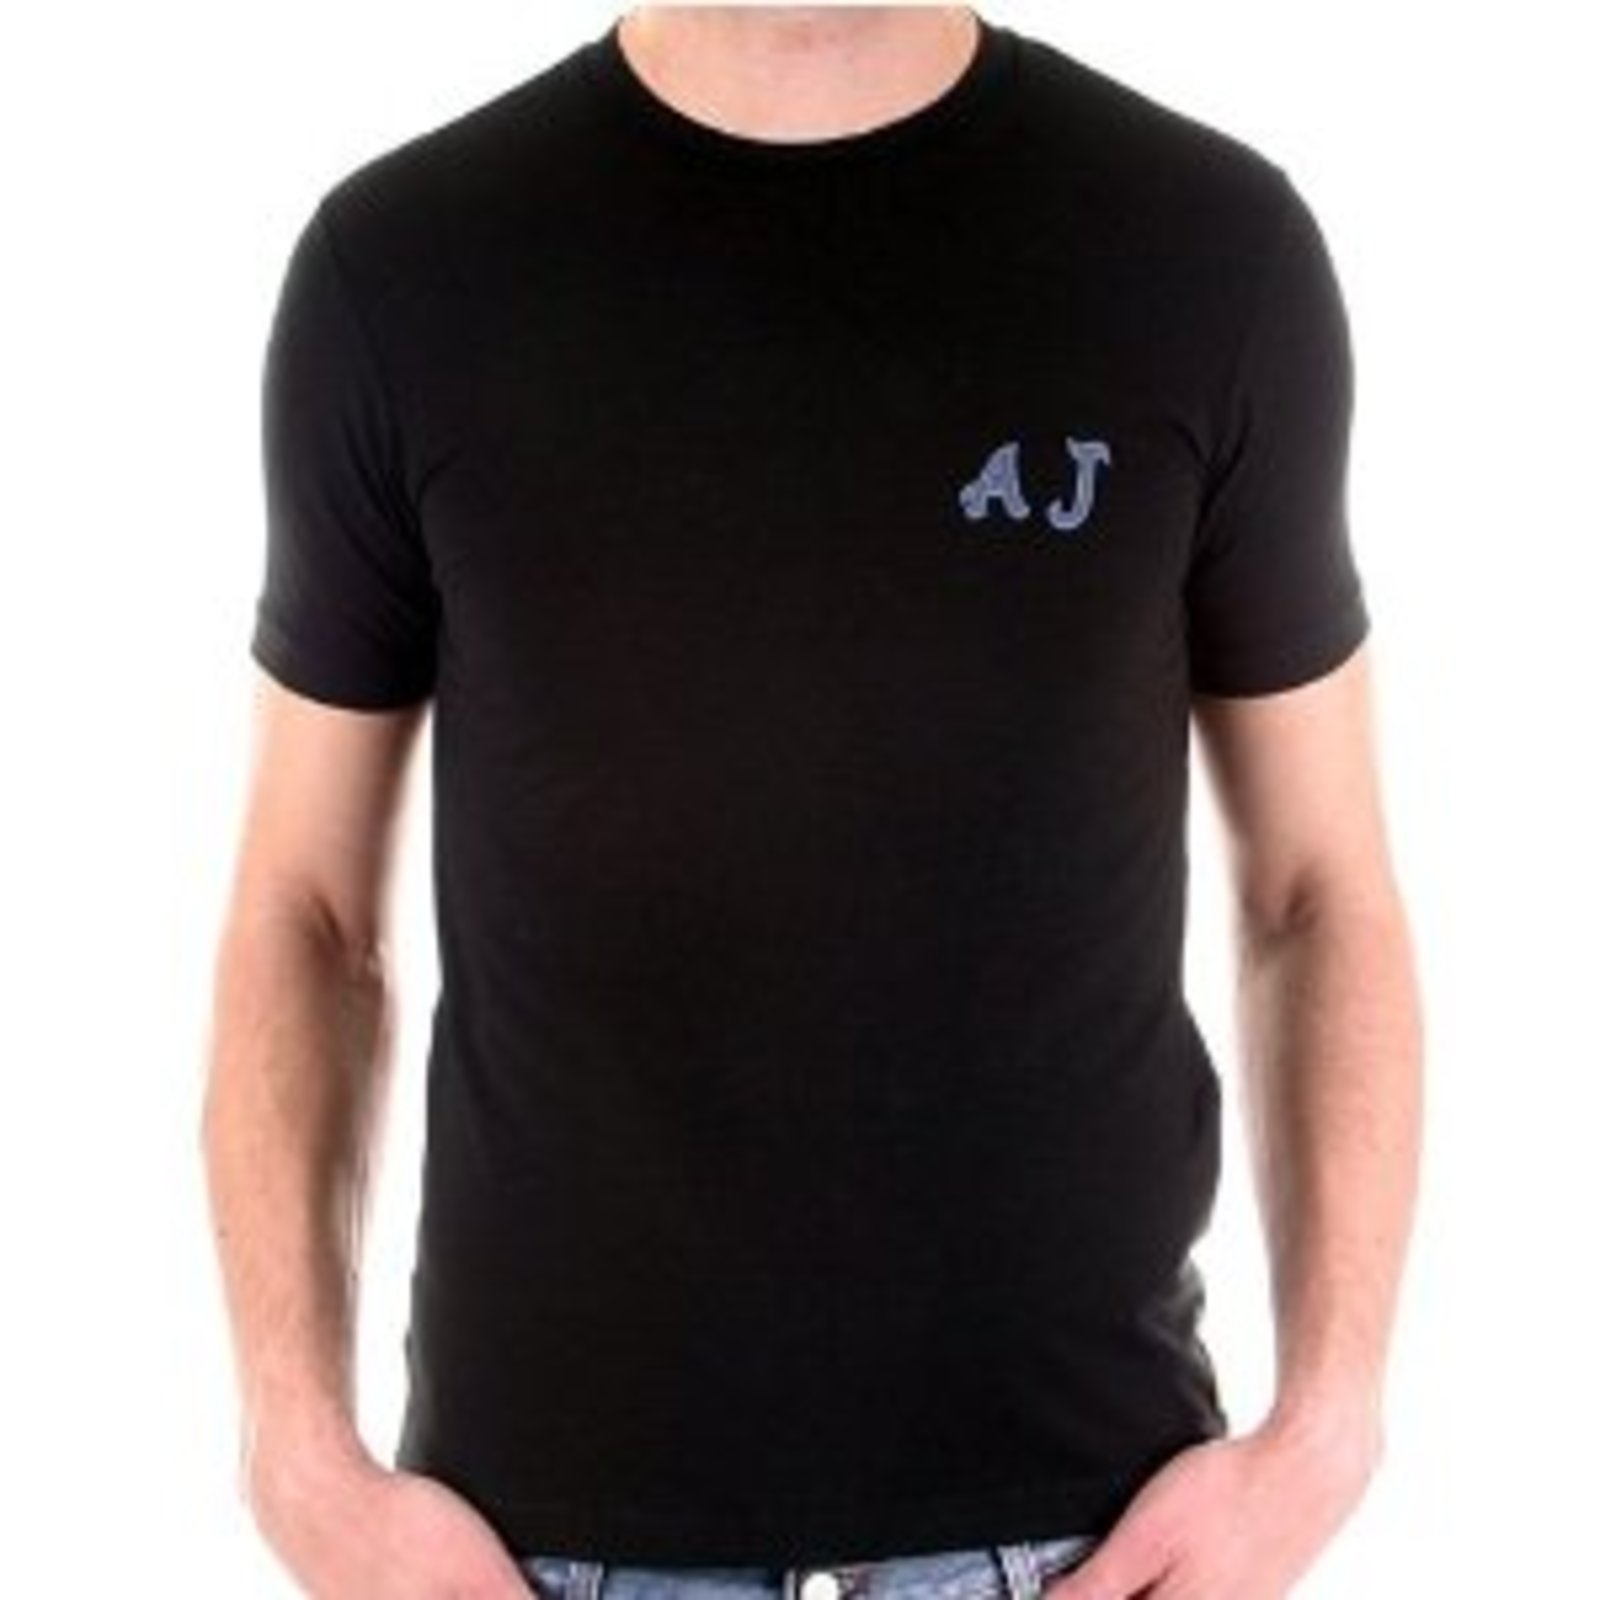 Black t shirt armani - Armani Jeans Short Sleeve Black T Shirt Ajm0732